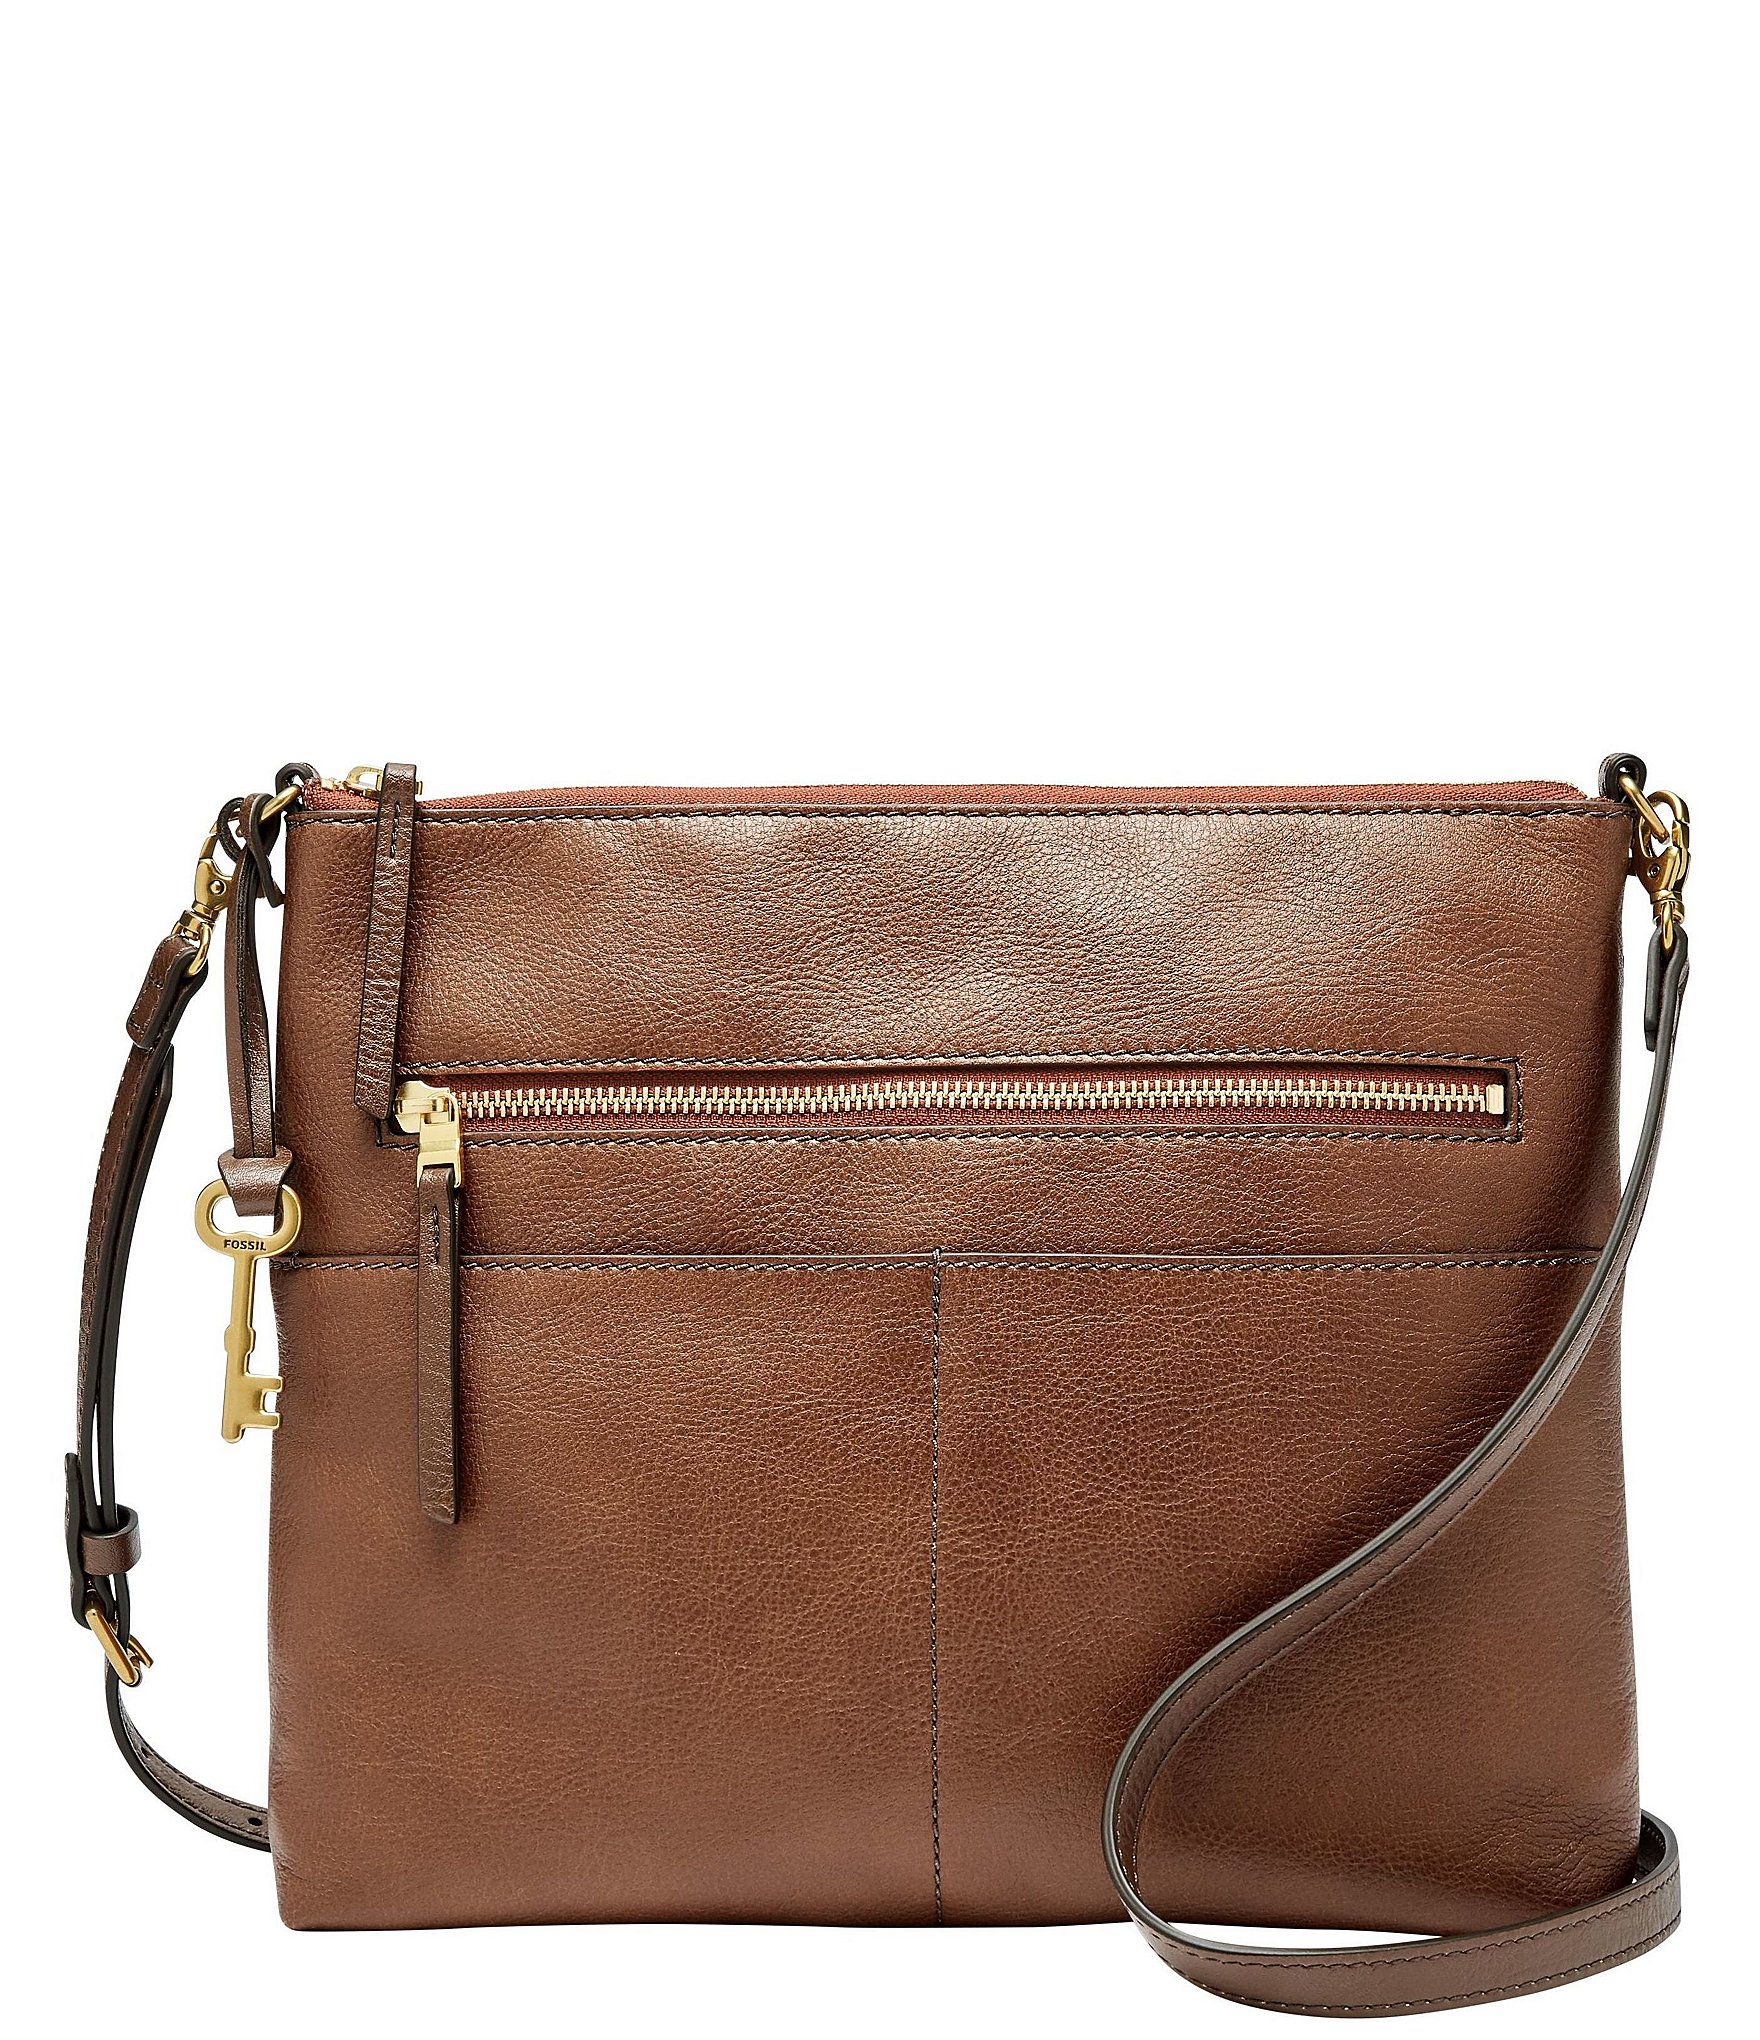 Fiona Large Leather Crossbody Bag